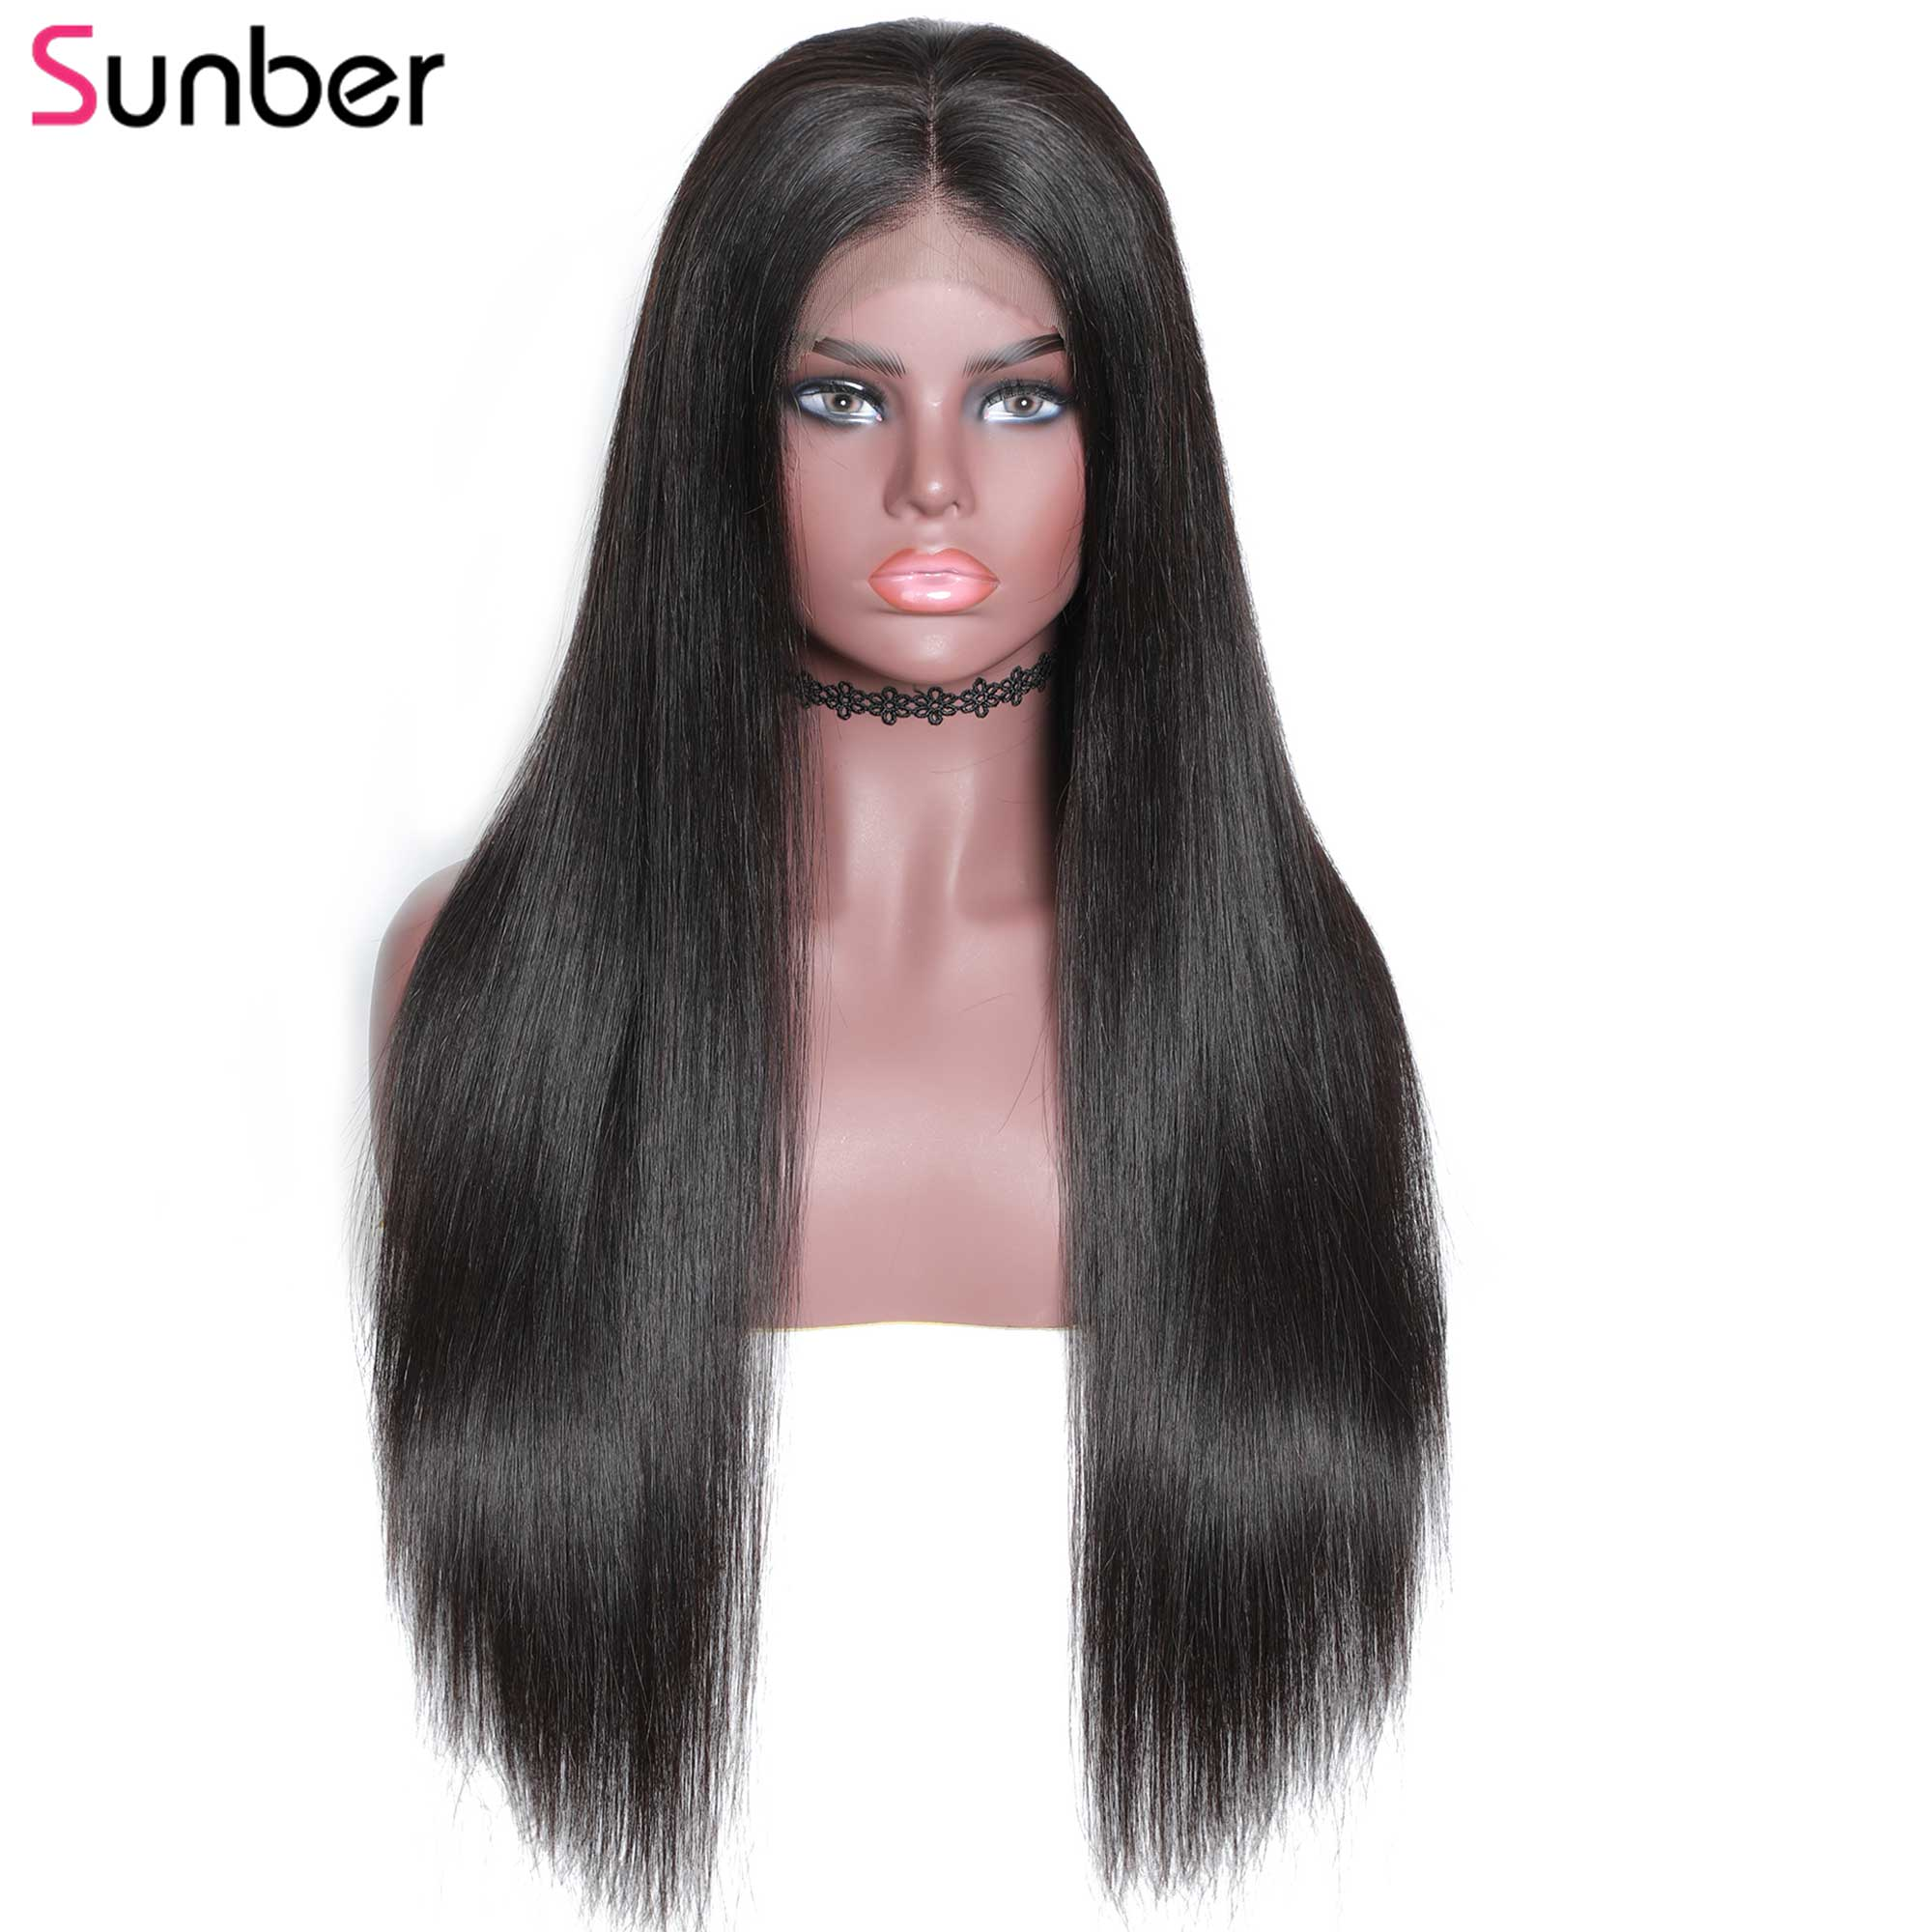 Sunber Hair 180 Density Lace Front Human Hair Wigs For Black Women Brazilian 13X4 Straight Lace